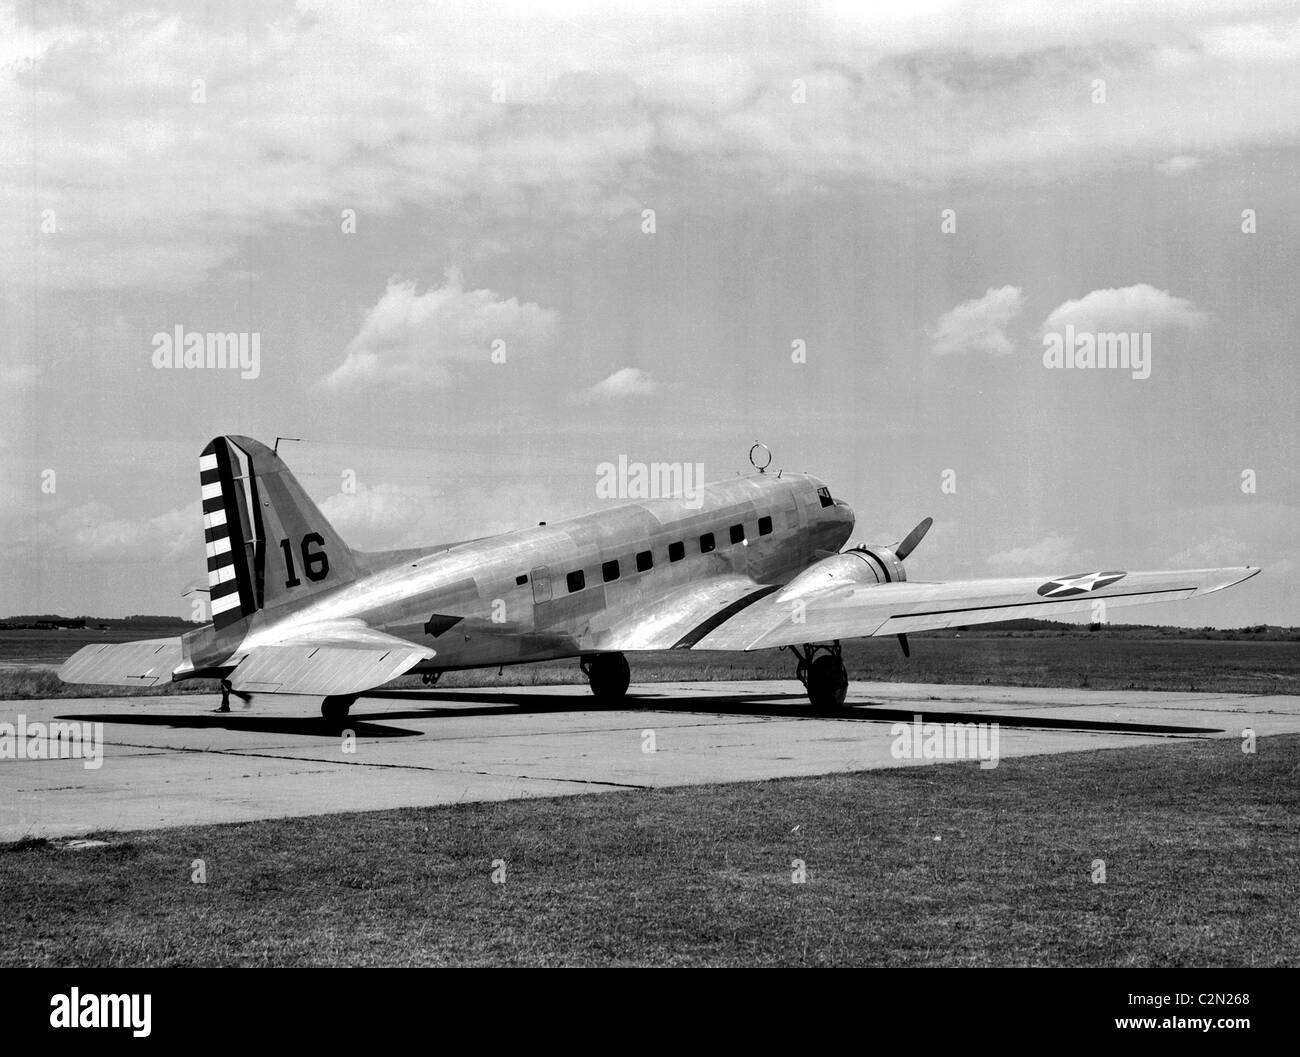 Douglas C-39: The Douglas C-39 was a military transport version of the Douglas DC-2 airliner. - Stock Image